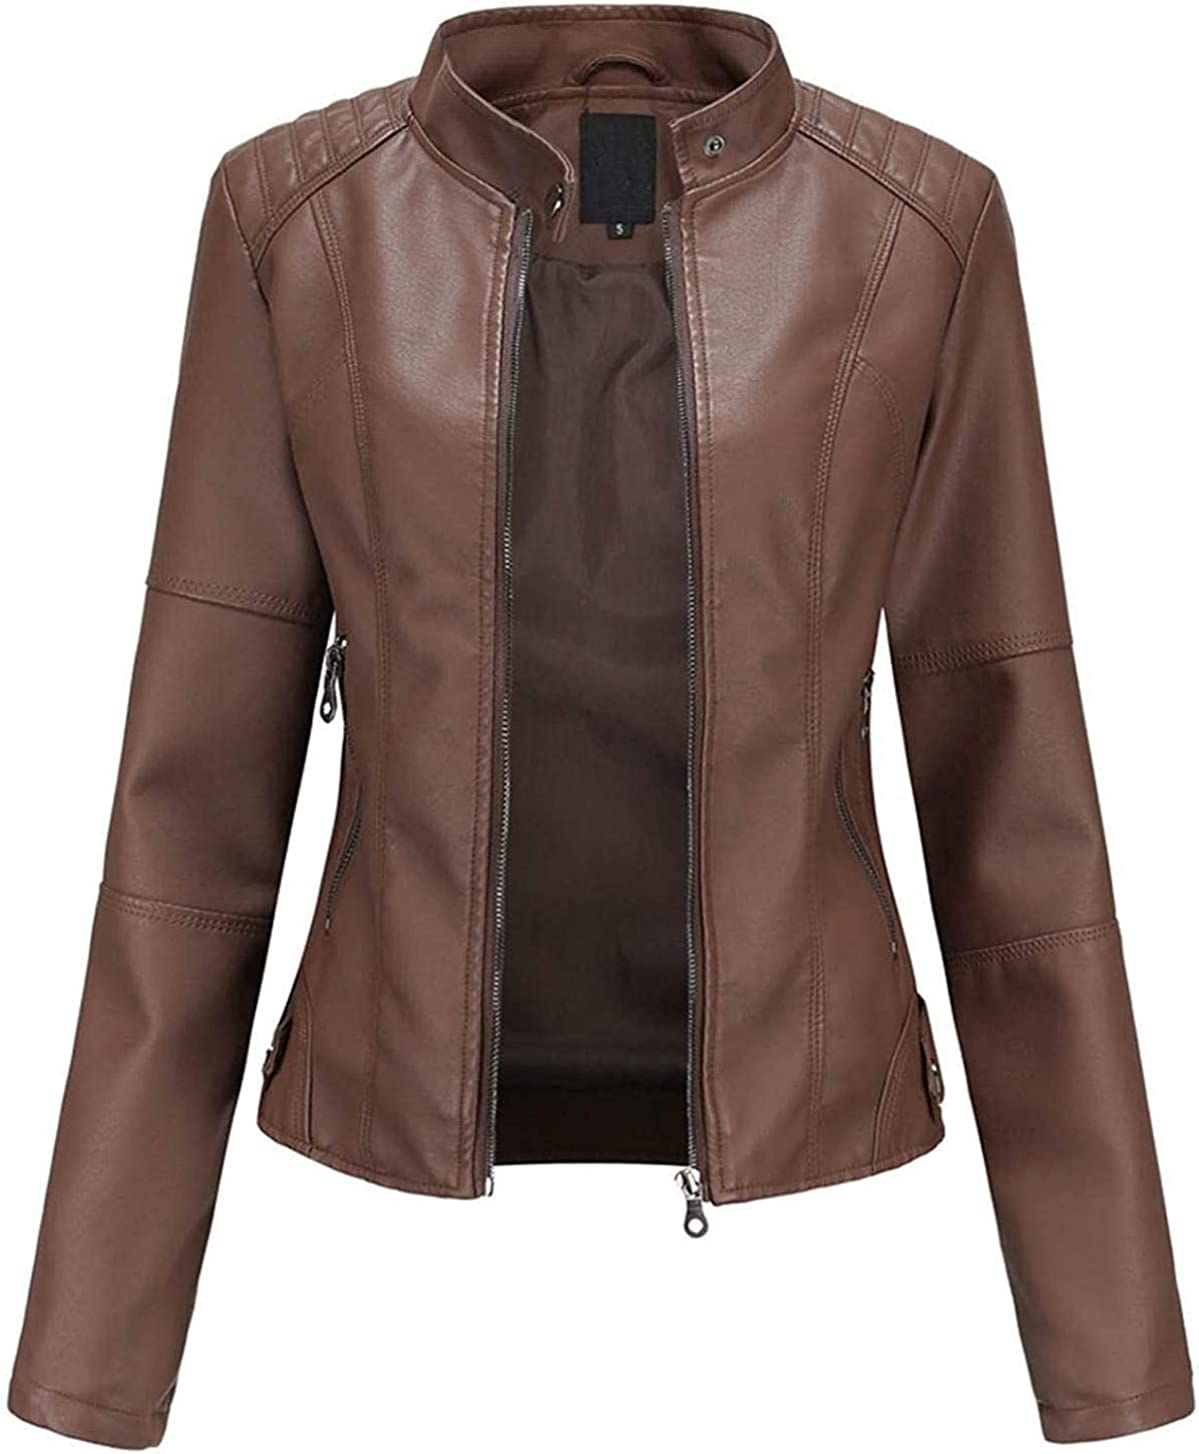 Faux Leather Jacket Women Motorcycle Fall Clothes Trendy Zip Jackets Slim-Fit Cropped Tops Short Thin Punk Coats